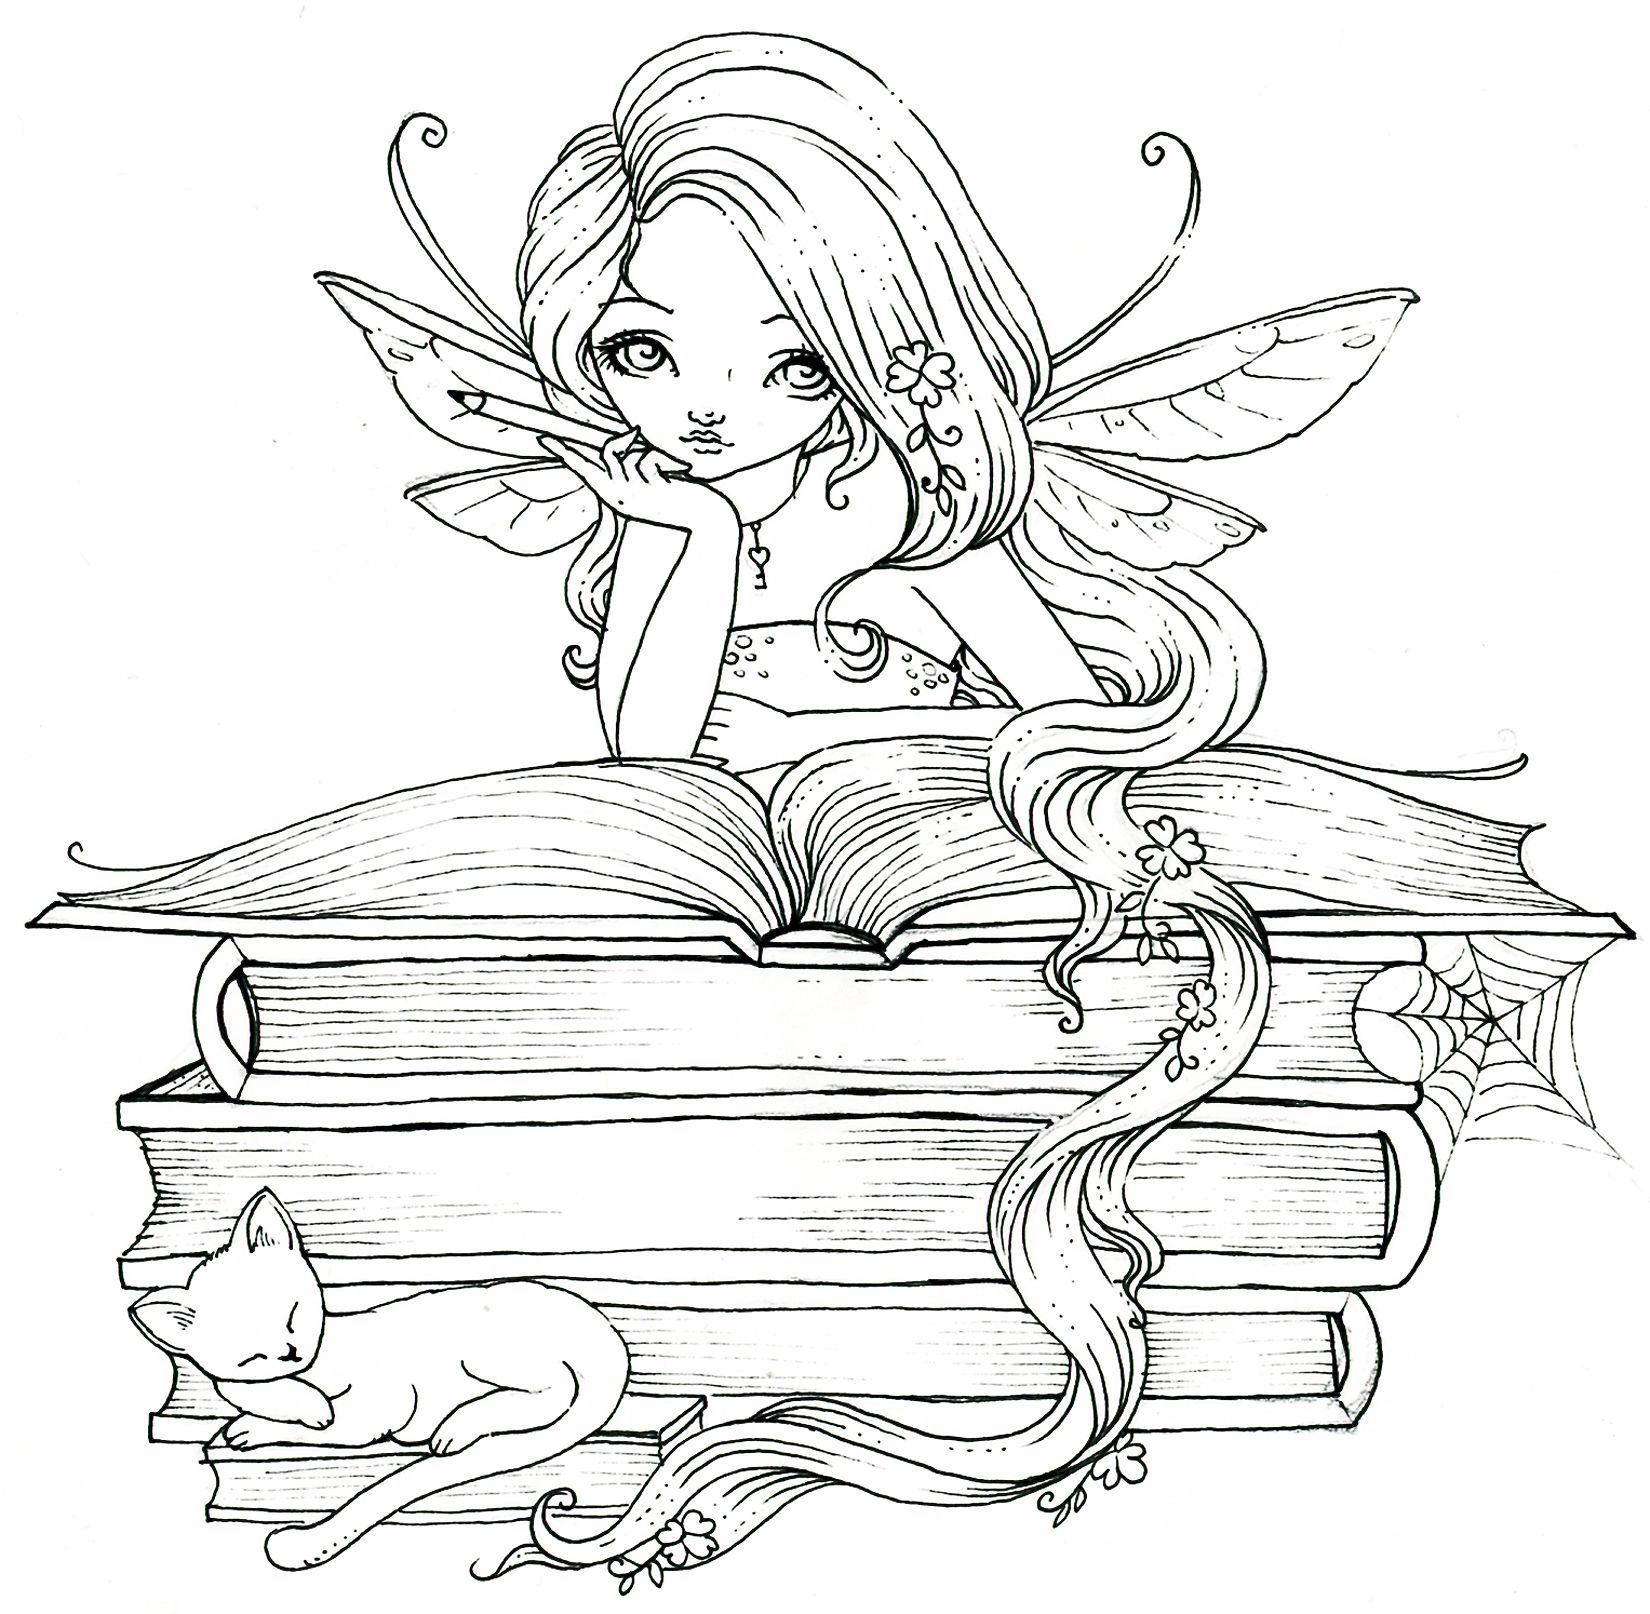 Fairy book lover. Perhaps she's reading Fairy Tales